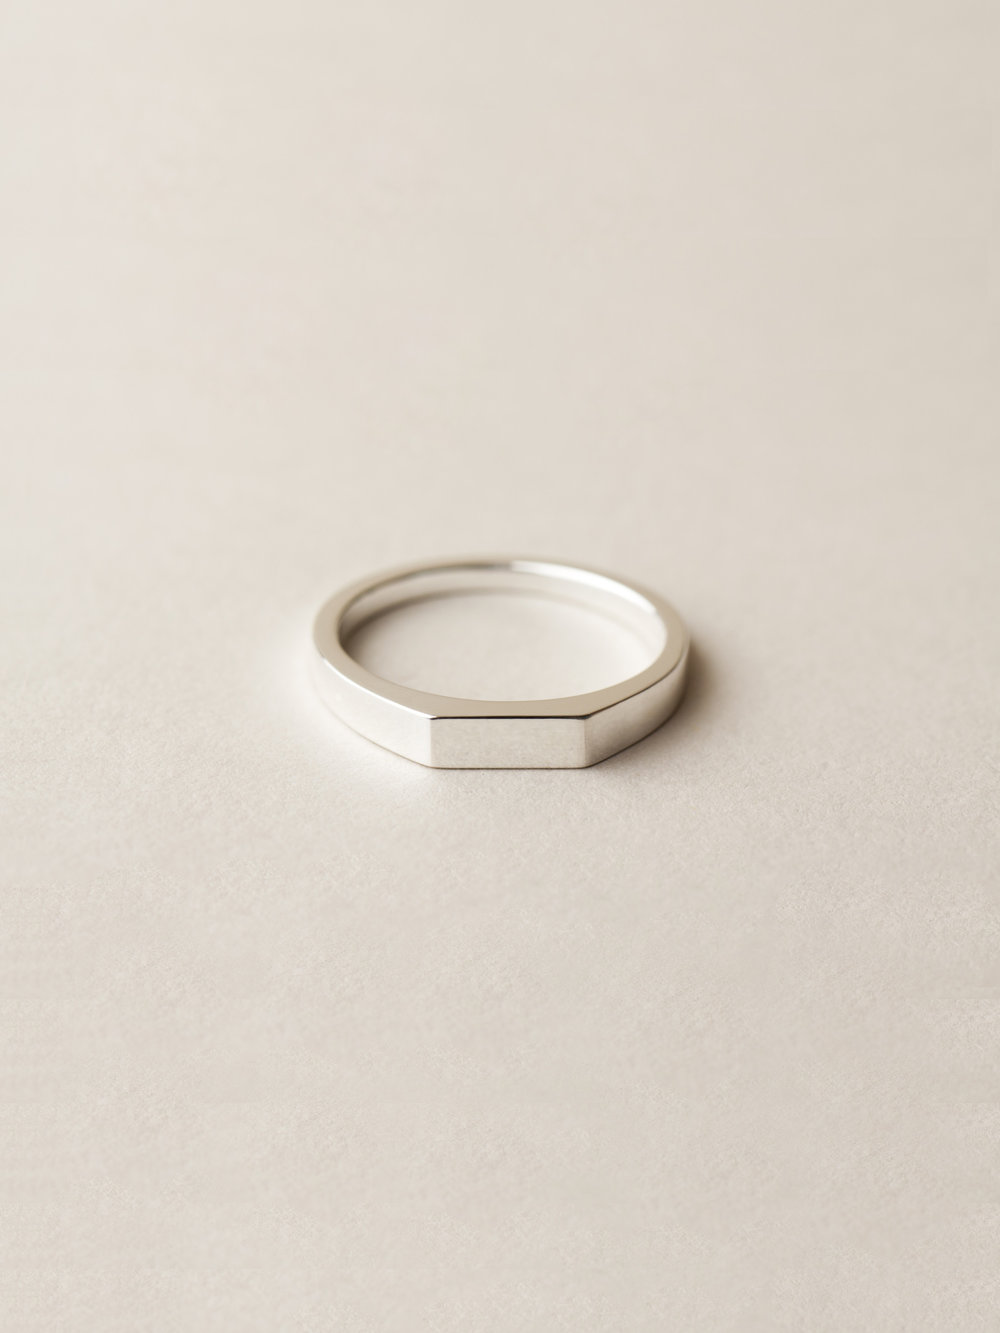 Siegelring Minima, klein rechteckig in 925 Silber  Signet ring Minima, small rectangle in sterling silver